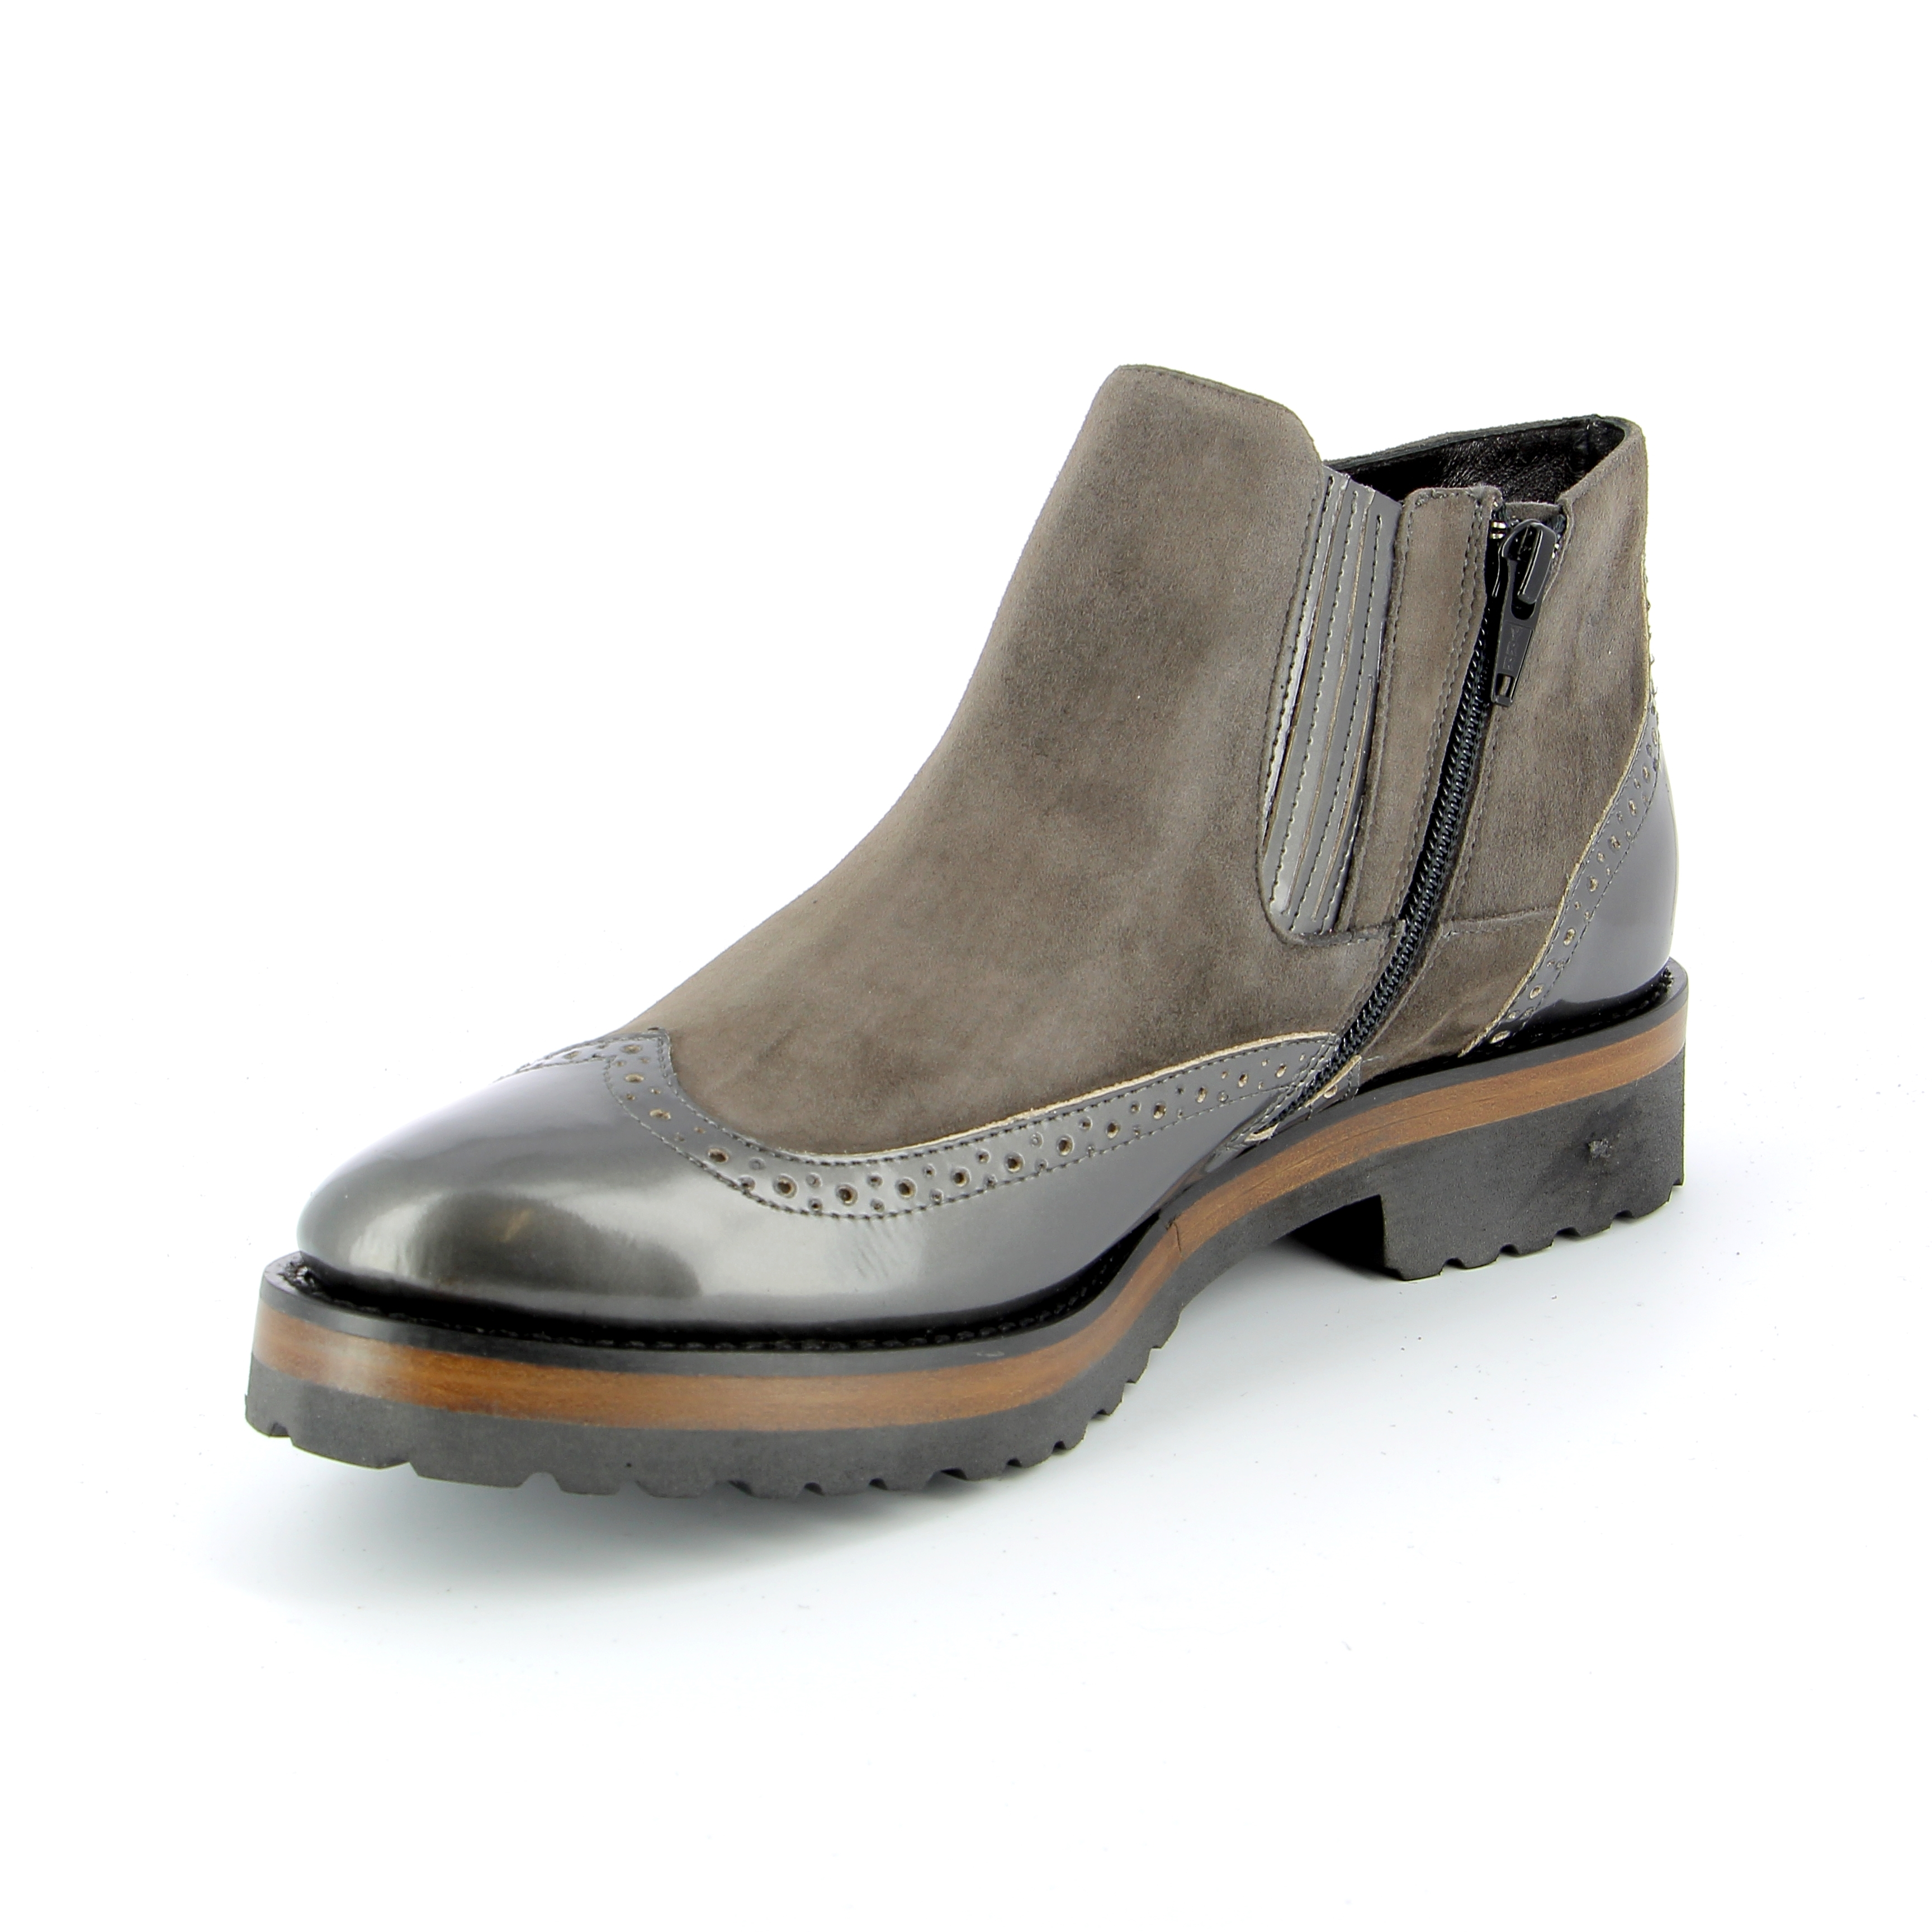 Luca Grossi Boots taupe